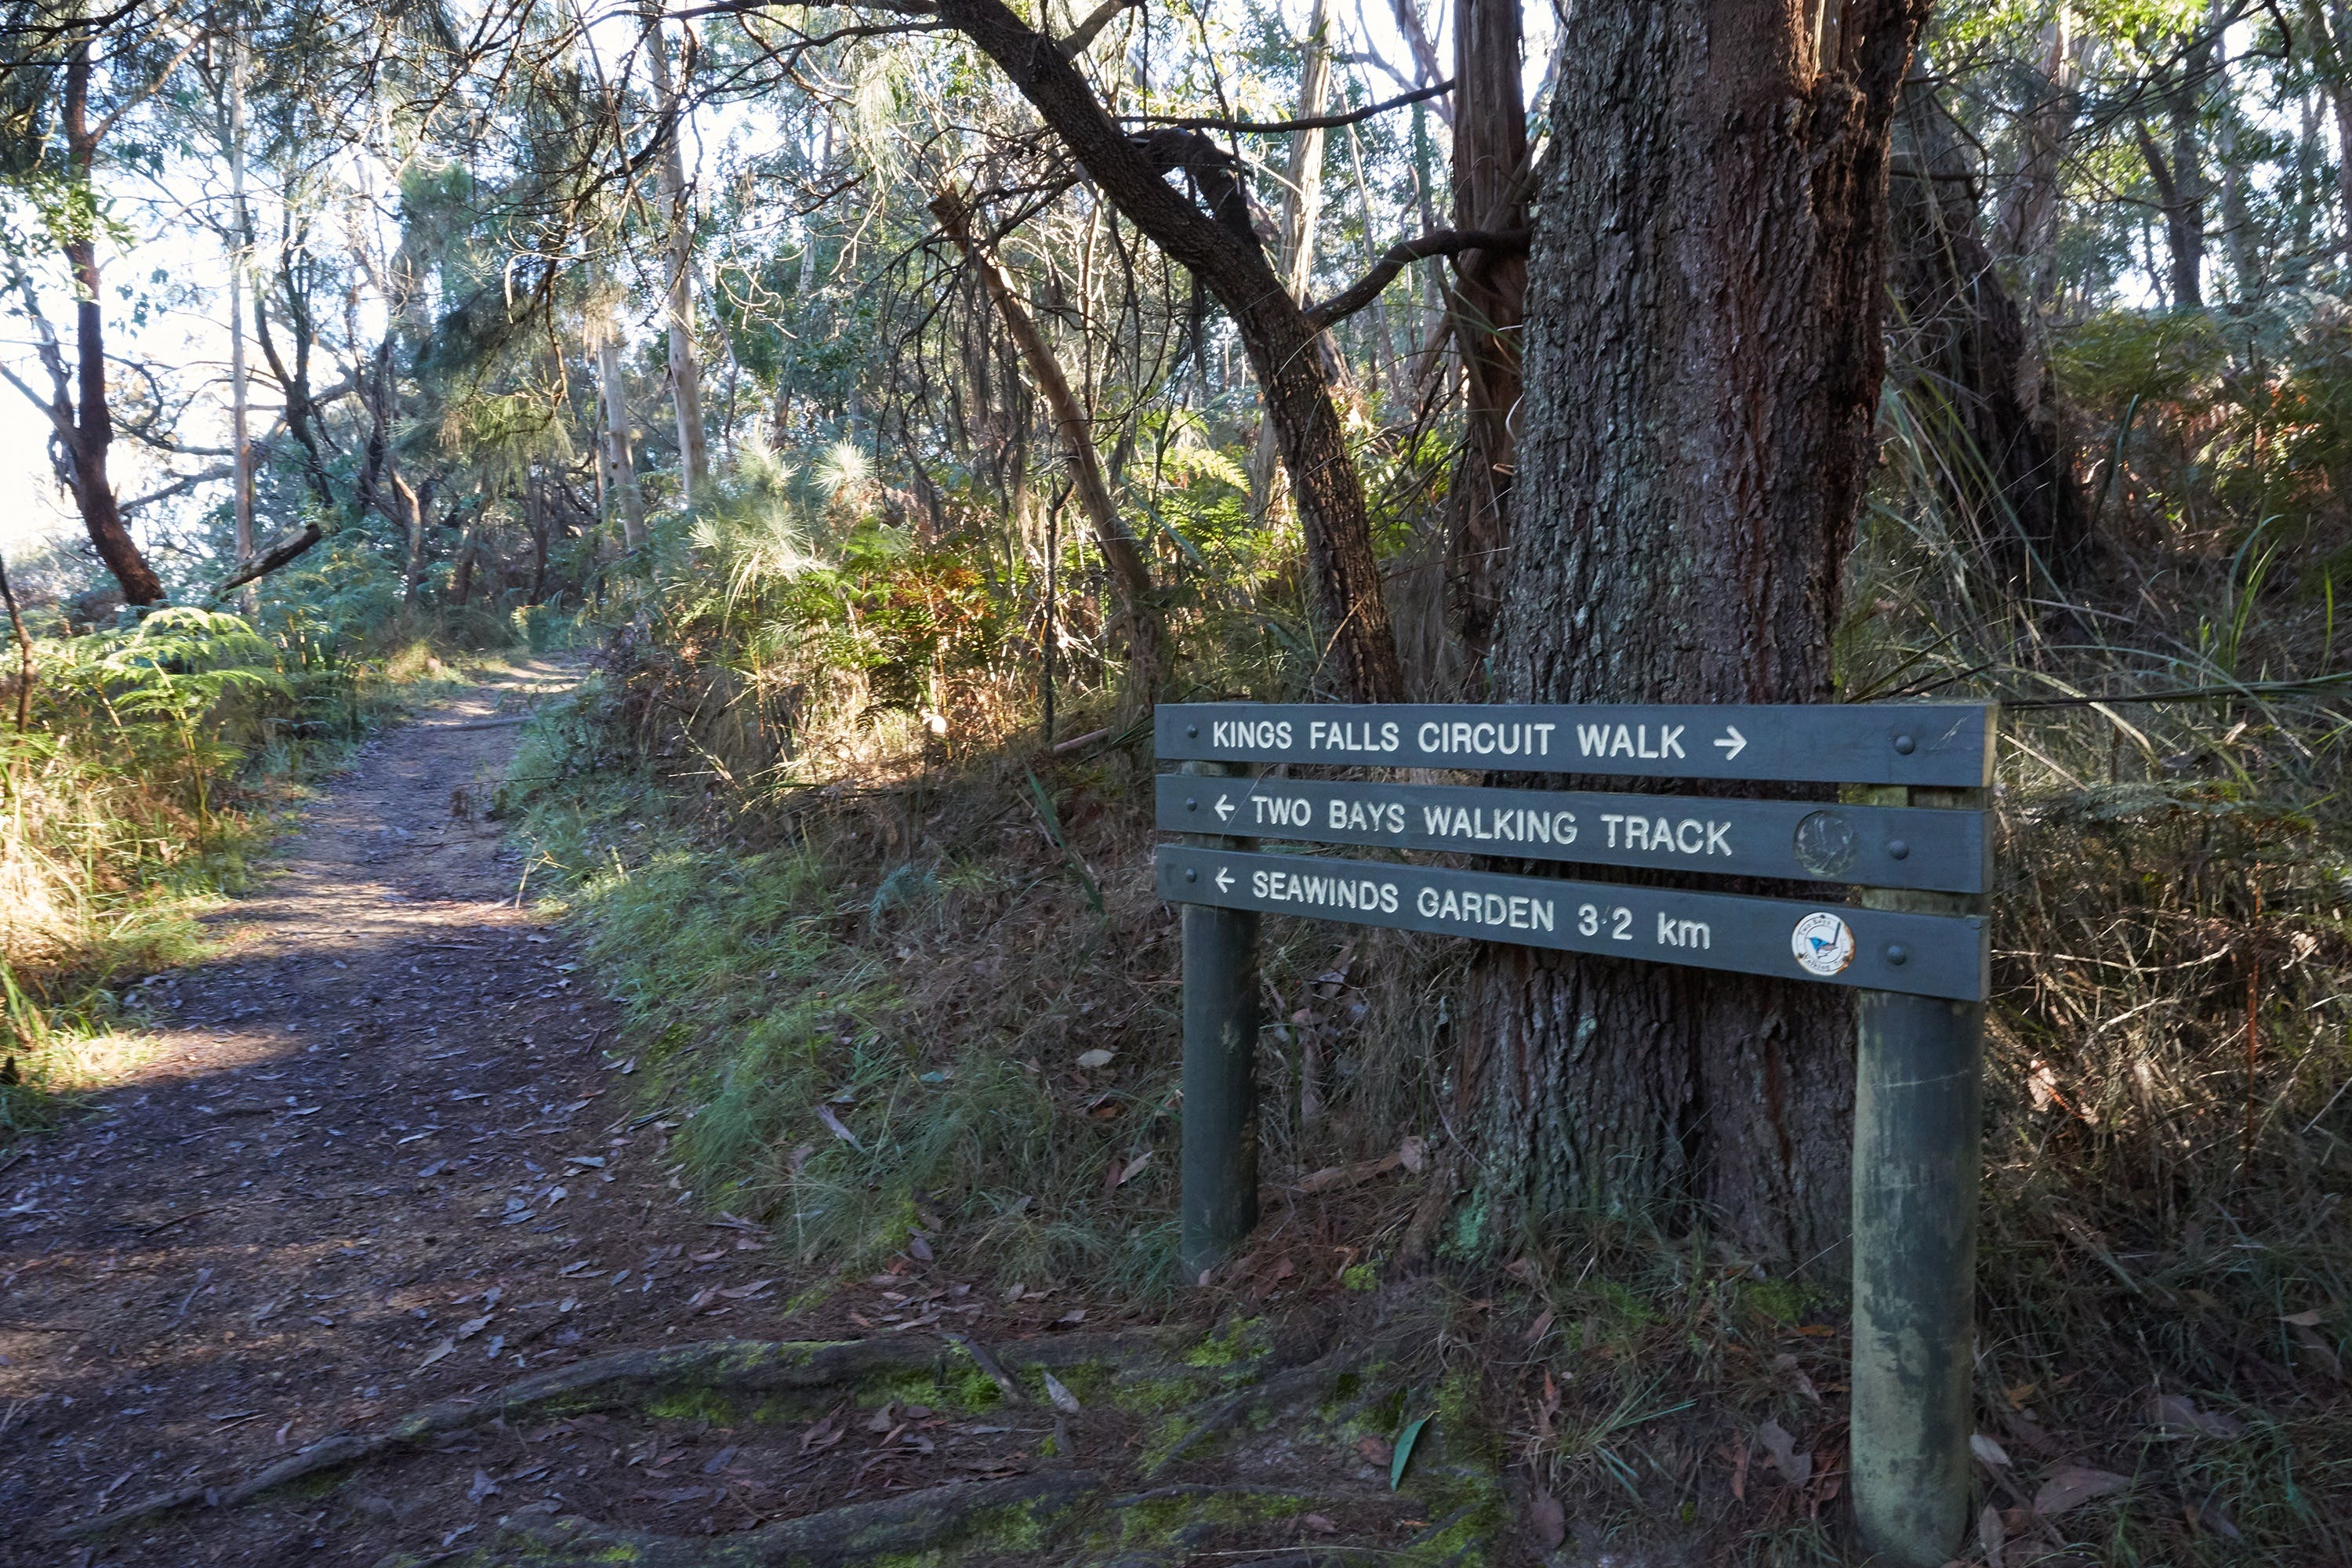 Arthurs Seat to Kings Falls Walk - St Kilda Accommodation